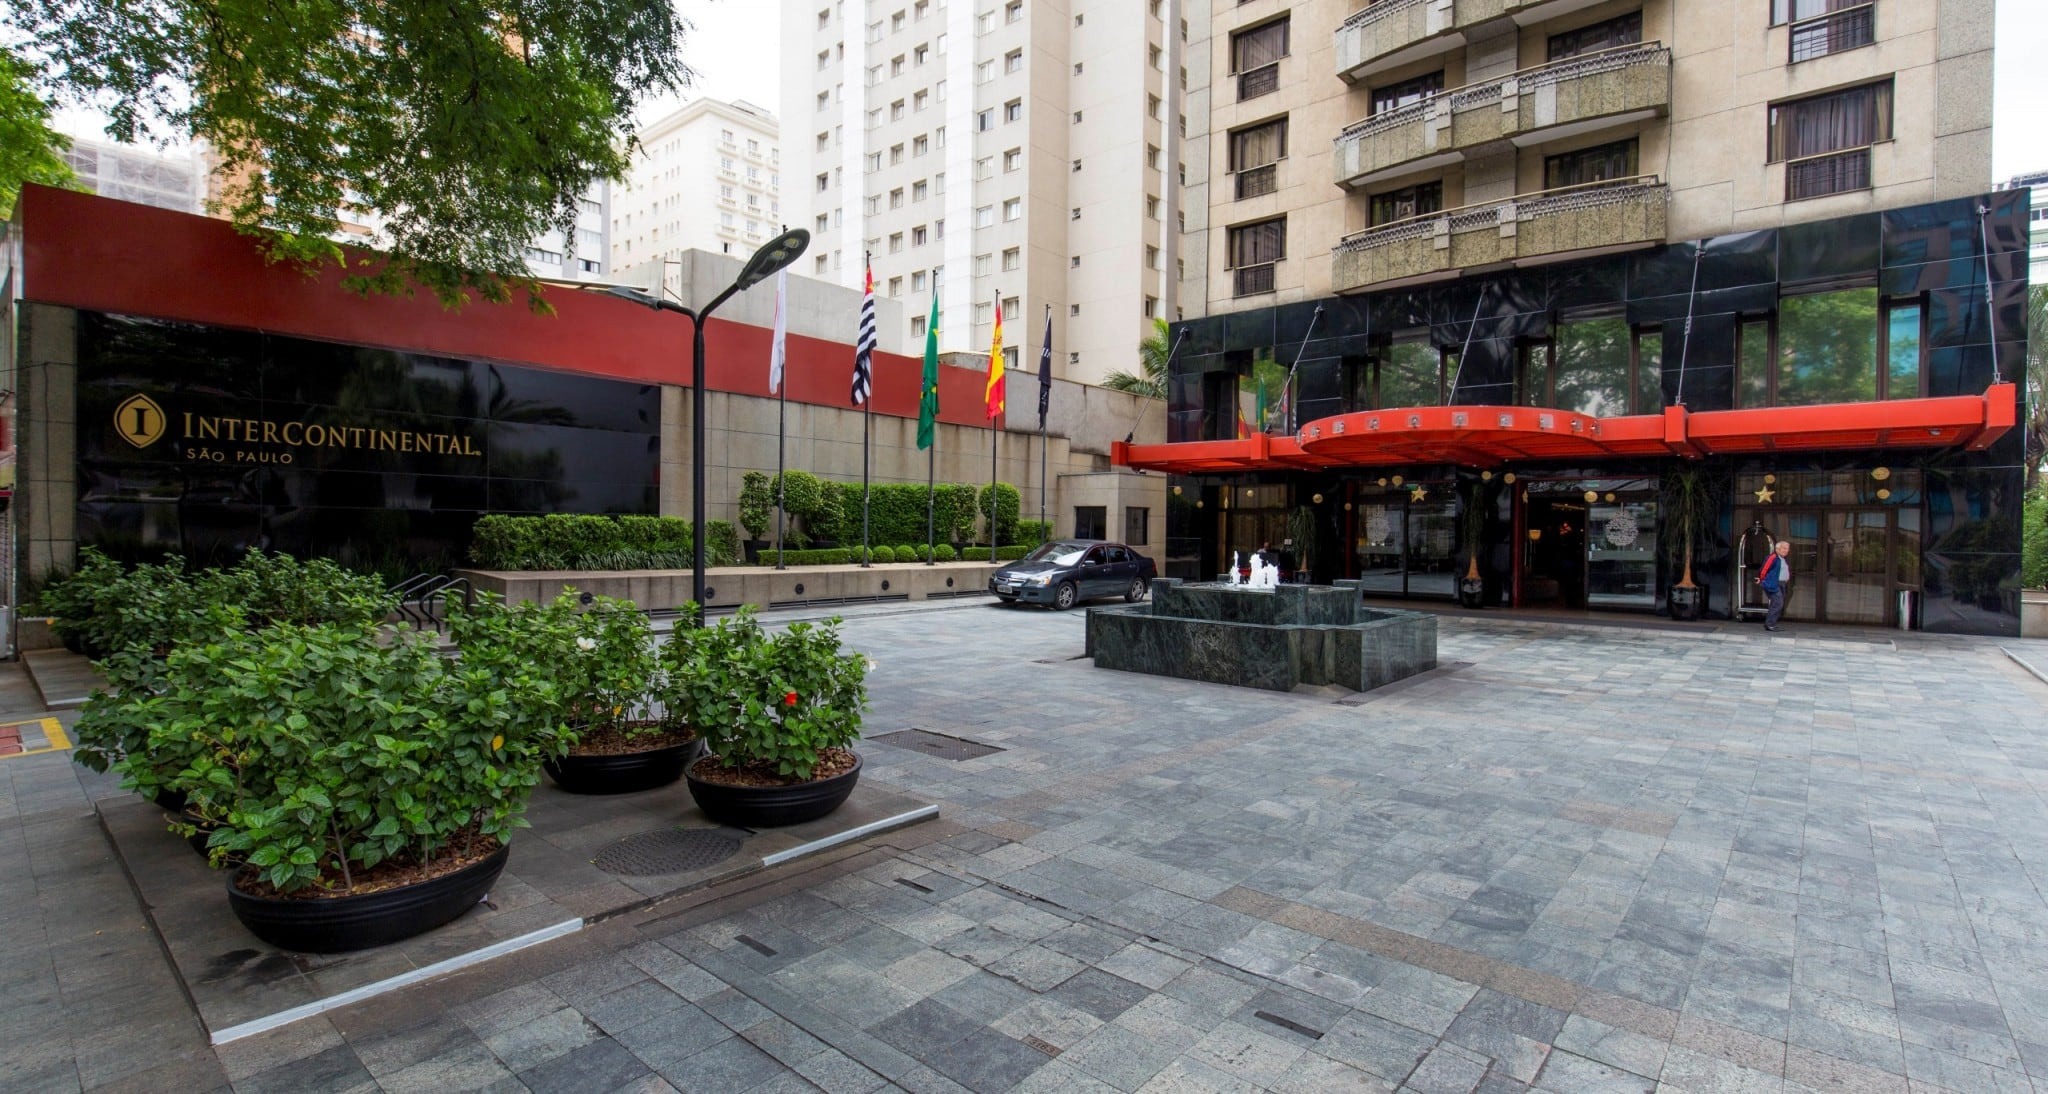 Brazil - Intercontinental Sao Paulo Hotel Review